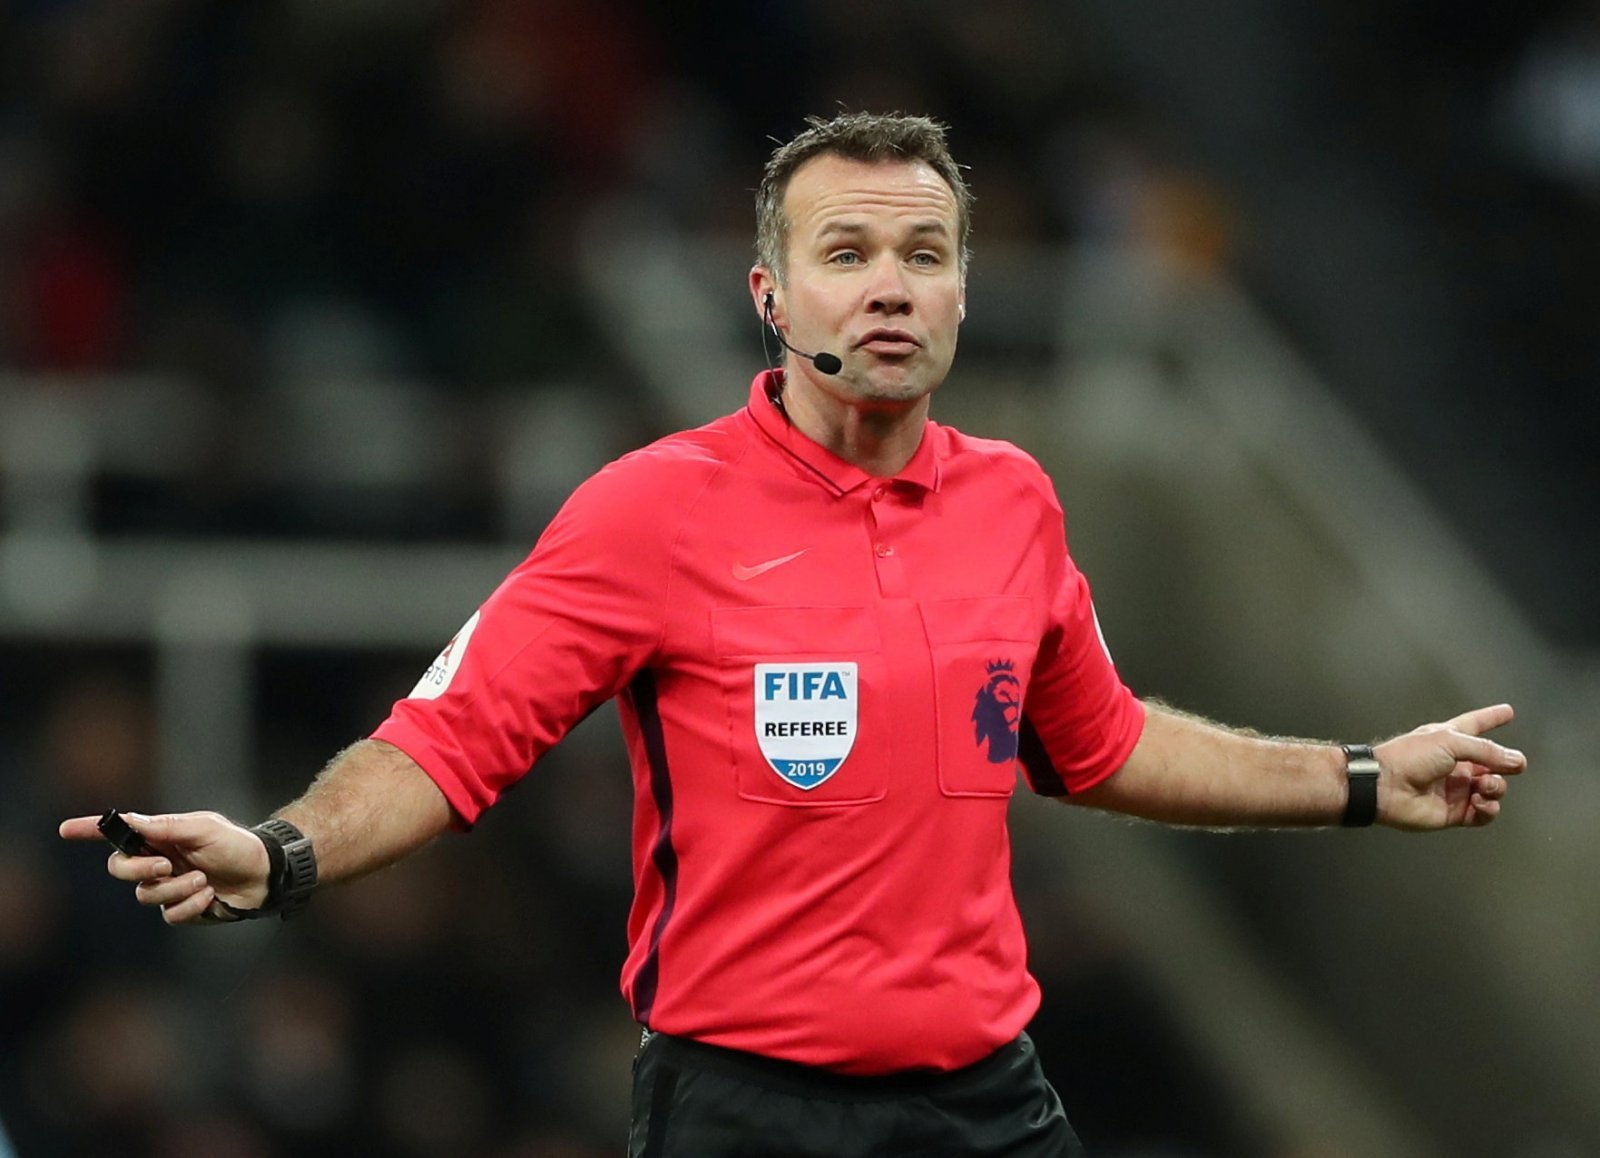 Everton: Tierney named referee for Toffees' trip to Bournemouth